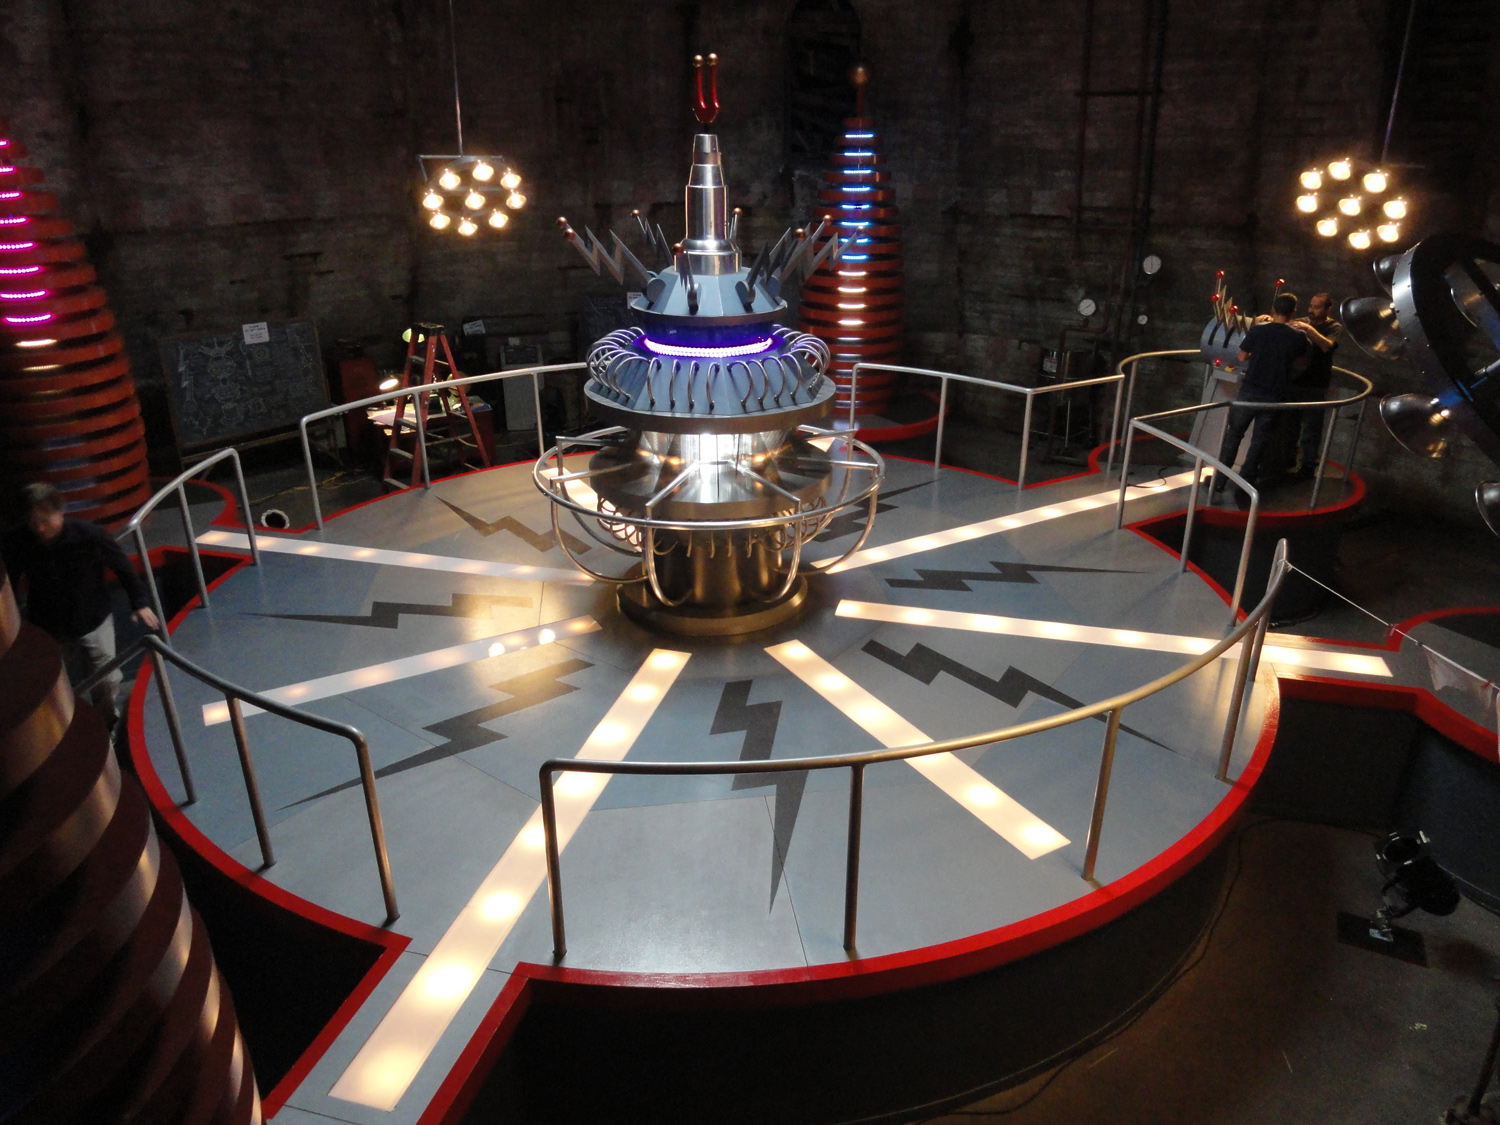 """The completed weather control machine hidden inside an abandoned light house set. The central machine spun in two different directions and had telescopic elements. VFX added Godzilla-style lightening bolts from the four surrounding """"Atomic Piles"""" to the center of the whirling machine."""